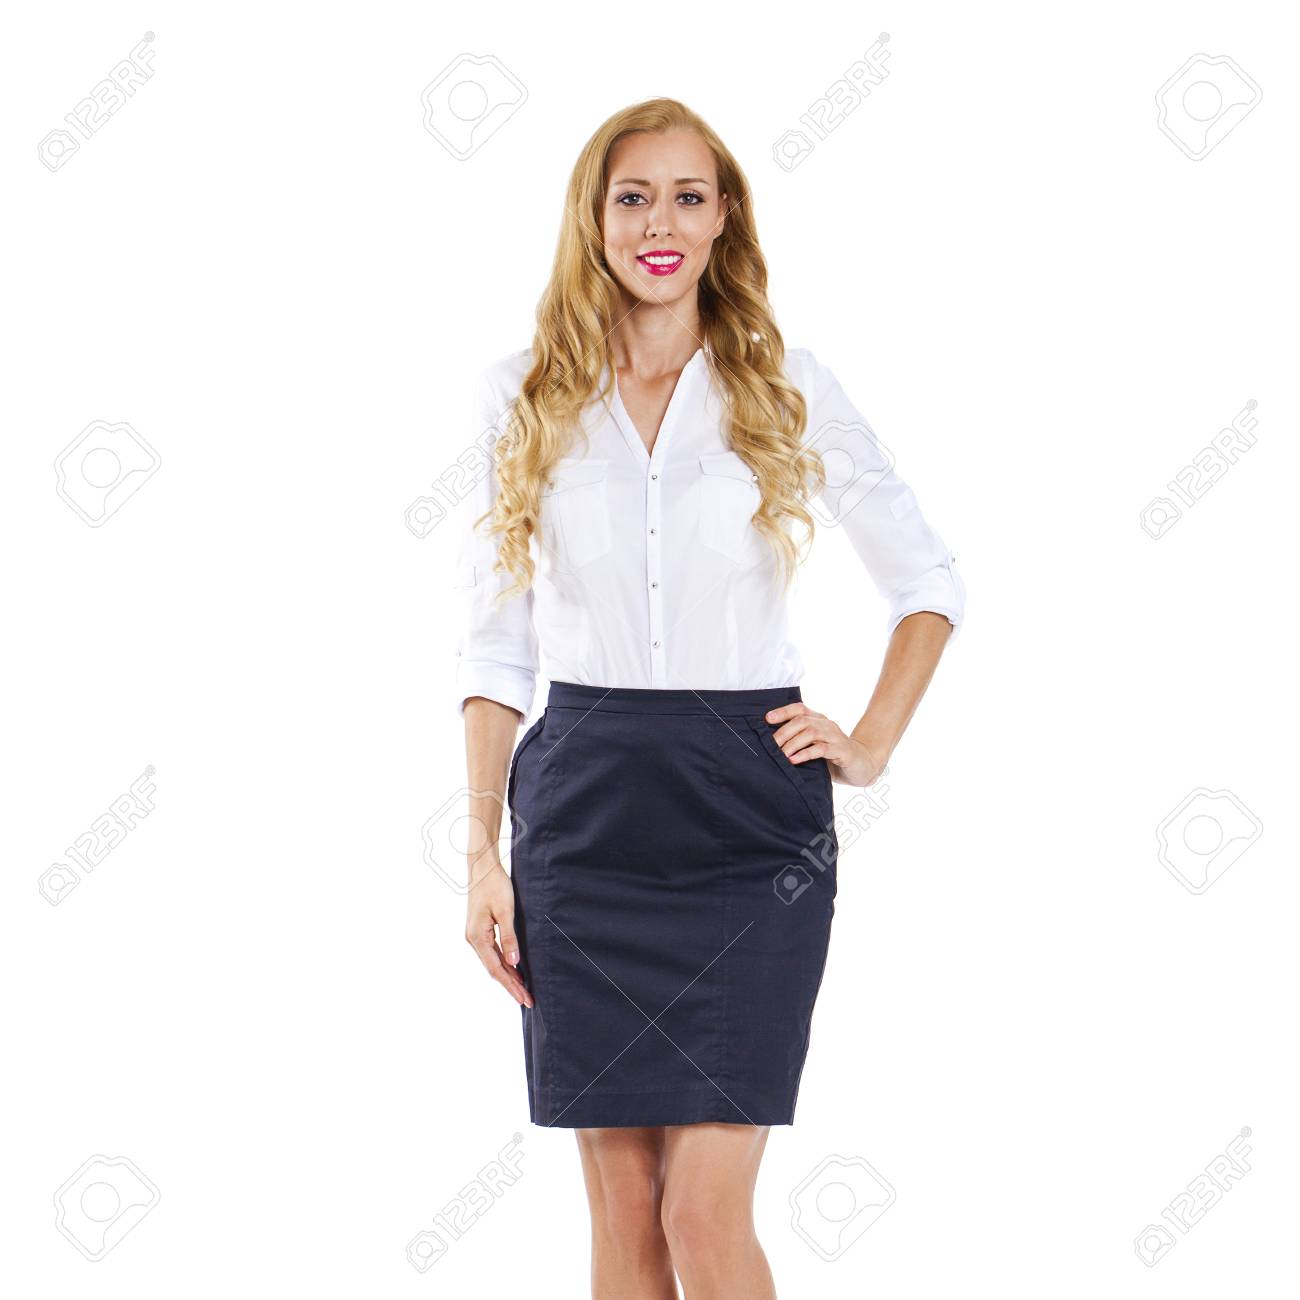 7fbc1acc97 Stock Photo - Young happy blonde woman in black skirt and white blouse,  isolated on white background